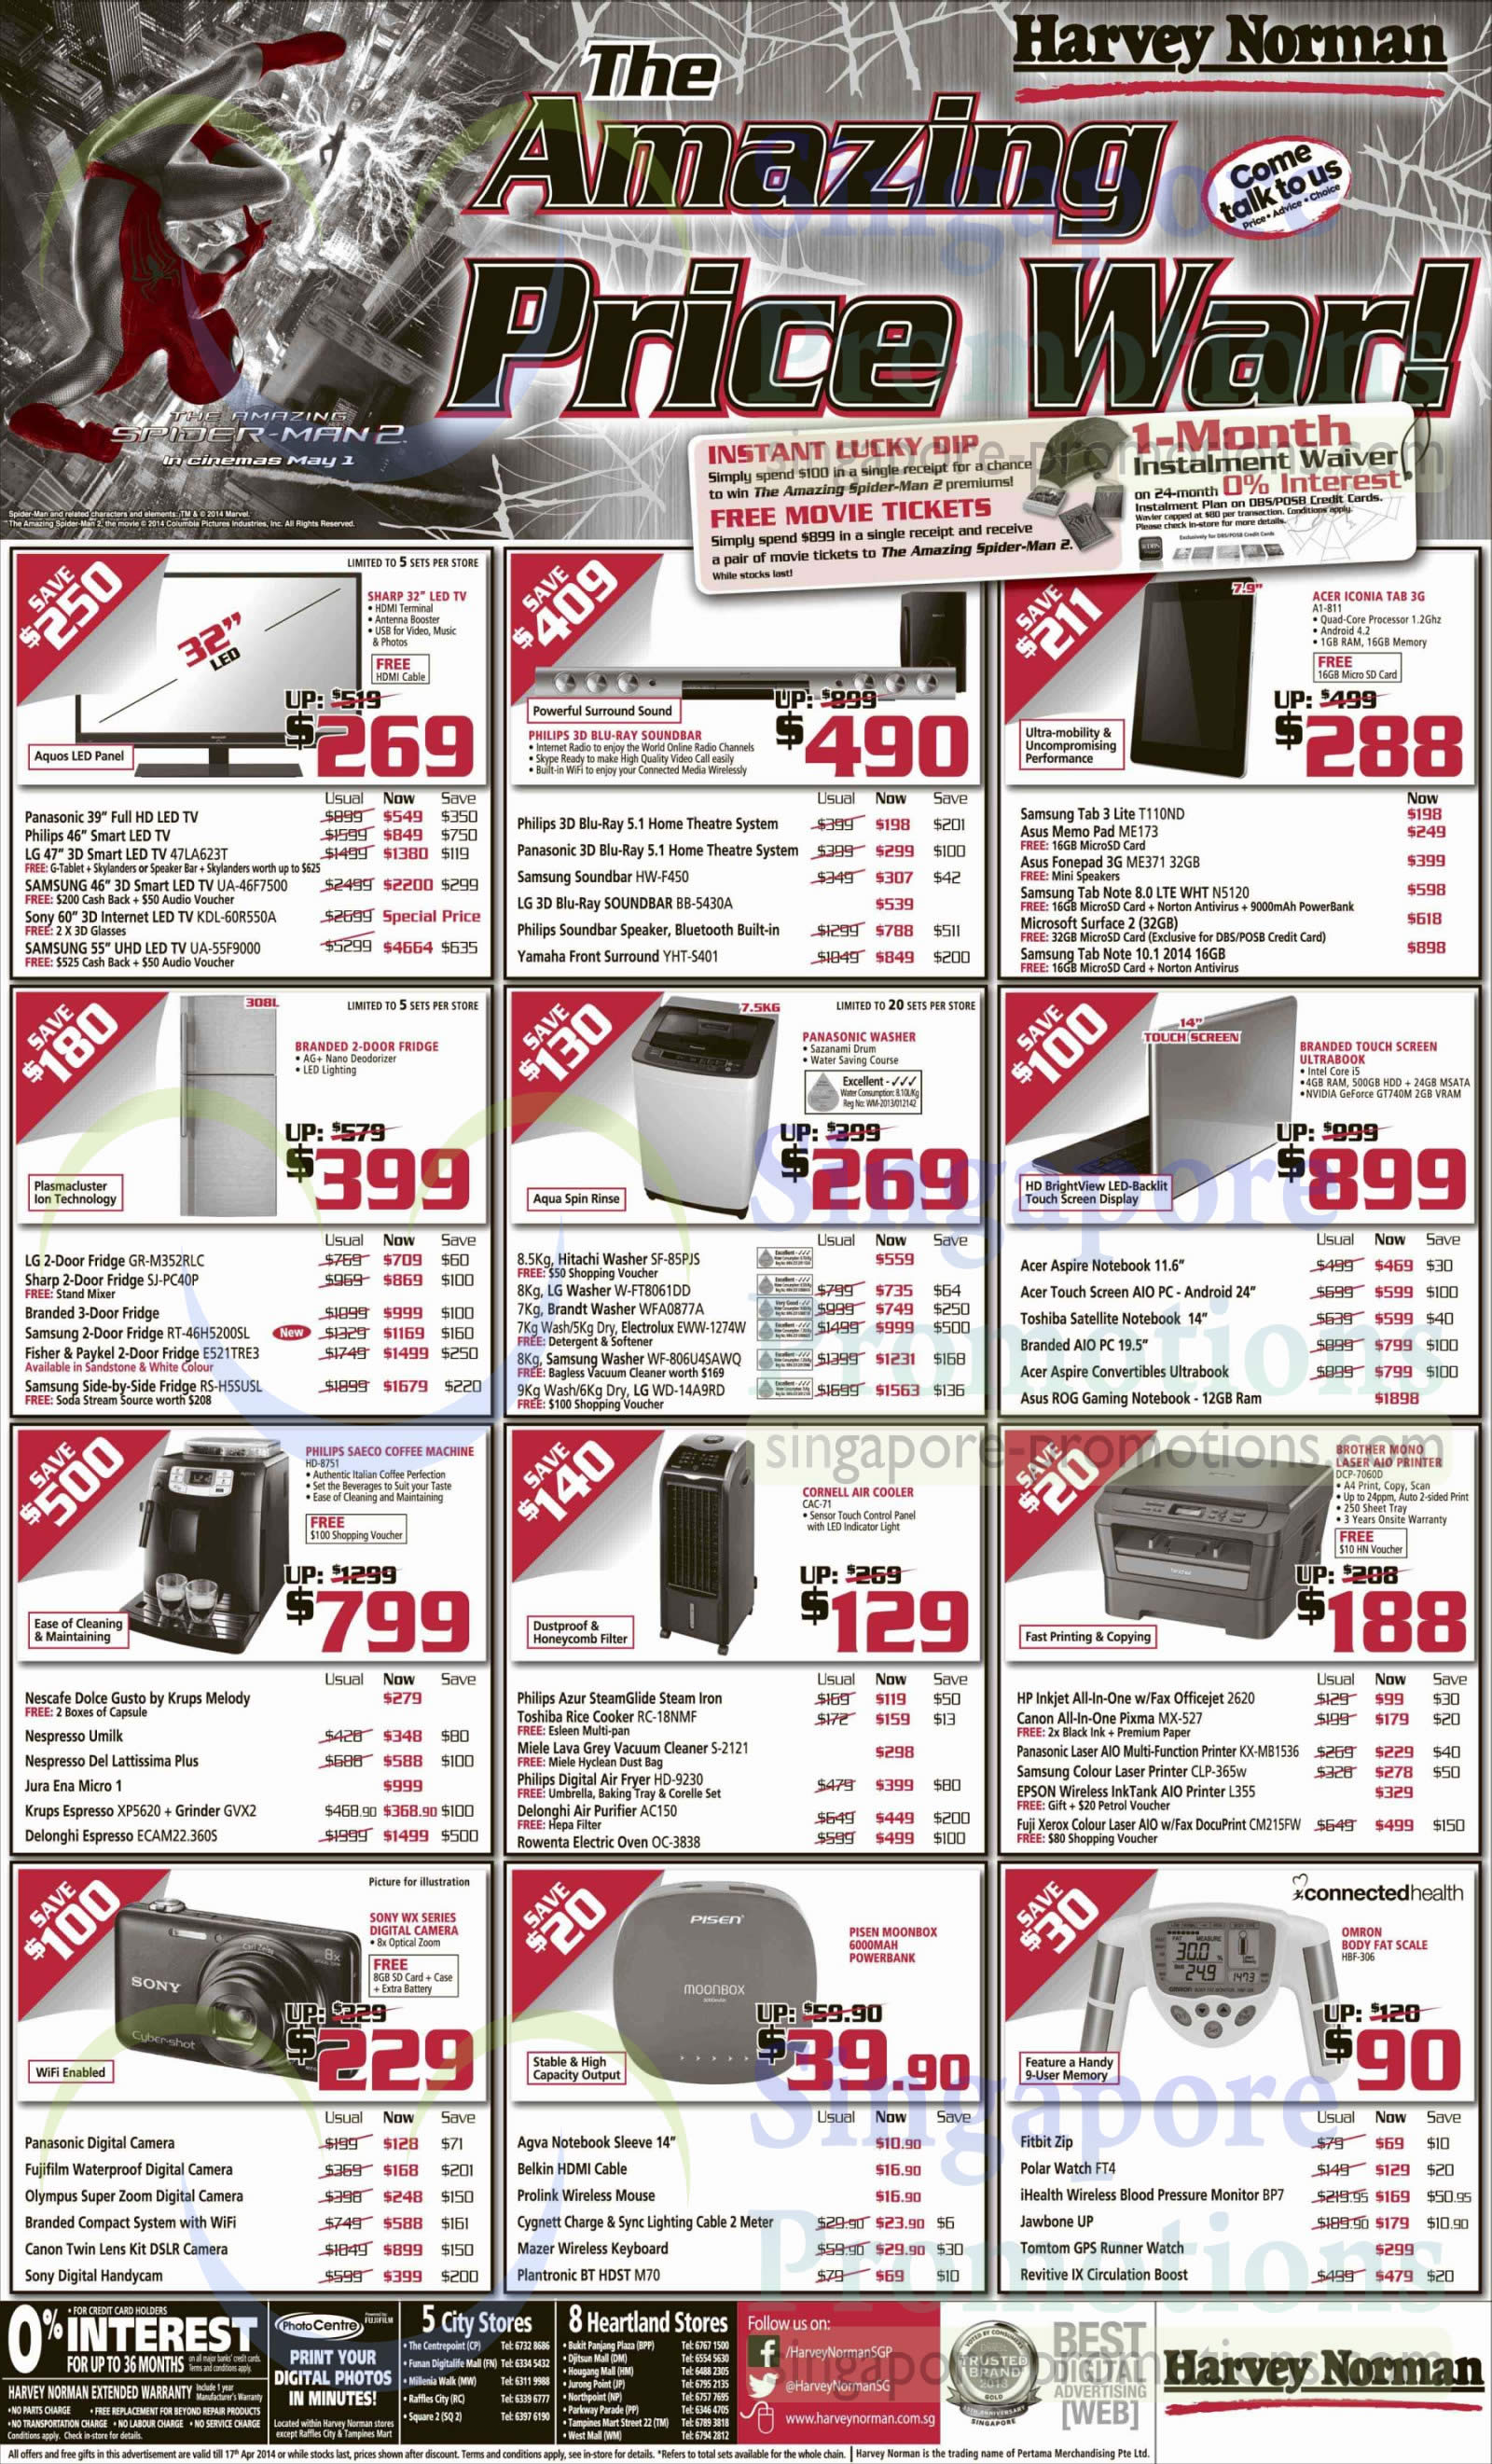 LG 47LA623T TV, Samsung UA46F7500 TV, Samsung UA55F9000 TV, Samsung HW-F450 Soundbar, LG BB-5430A Soundbar, Yamaha YHT-S401 Speakers, Acer A1-811 Tablet, ASUS ME173 Tablet, ASUS ME371 Tablet, Samsung Galaxy Note 8.0, Microsoft Surface 2, Samsung Galaxy Note 10.1, LG GR-M325RLC Fridge, Sharp SJPC40P Fridge, Samsung RT46H5200SL Fridge, Fisher & Paykel E521TRE3 Fridge, Samsung RSH5SUSL Fridge, Hitachi SF85PJS Washer, LG WFT8061DD Washer, Brandt WFA0877A Washer, Electrolux EWW1274W Washer, Samsung WF806U4SAWQ Washer, LG WD14A9RD Washer, Philips HD-8751 Coffee Machine, Nescafe Dolce Gusto Coffee Machine, Nespresso Umilk Coffee Machine, Nespresso Del Lattissima Plus Coffee Machine, Jura Ena Micro 1 Coffee Machine, Delonghi ECAM22.360S Coffee Machine, Cornell CAC-71 Air Cooler, Philips Azur Iron, Toshiba RC-18NMF Rice Cooker, Miele S-2121 Vacuum Cleaner, Philips HD-9230 Air Fryer, Delonghi AC150 Air Purifier, Rowenta OC-3838 Oven, Brother DCP-7060D Printer, HP 2620 Printer, Canon MX527 Printer, Panasonic KX-MB1536 Printer, Samsung CLP-365w Printer, Epson L355 Printer, Fuji Xerox CM215FW Printer, Plantronic M70 Bluetooth Headset, Omron HBF-306 Body Fat Scale, Polar FT4 Watch and iHealth BP7 Blood Pressure Monitor